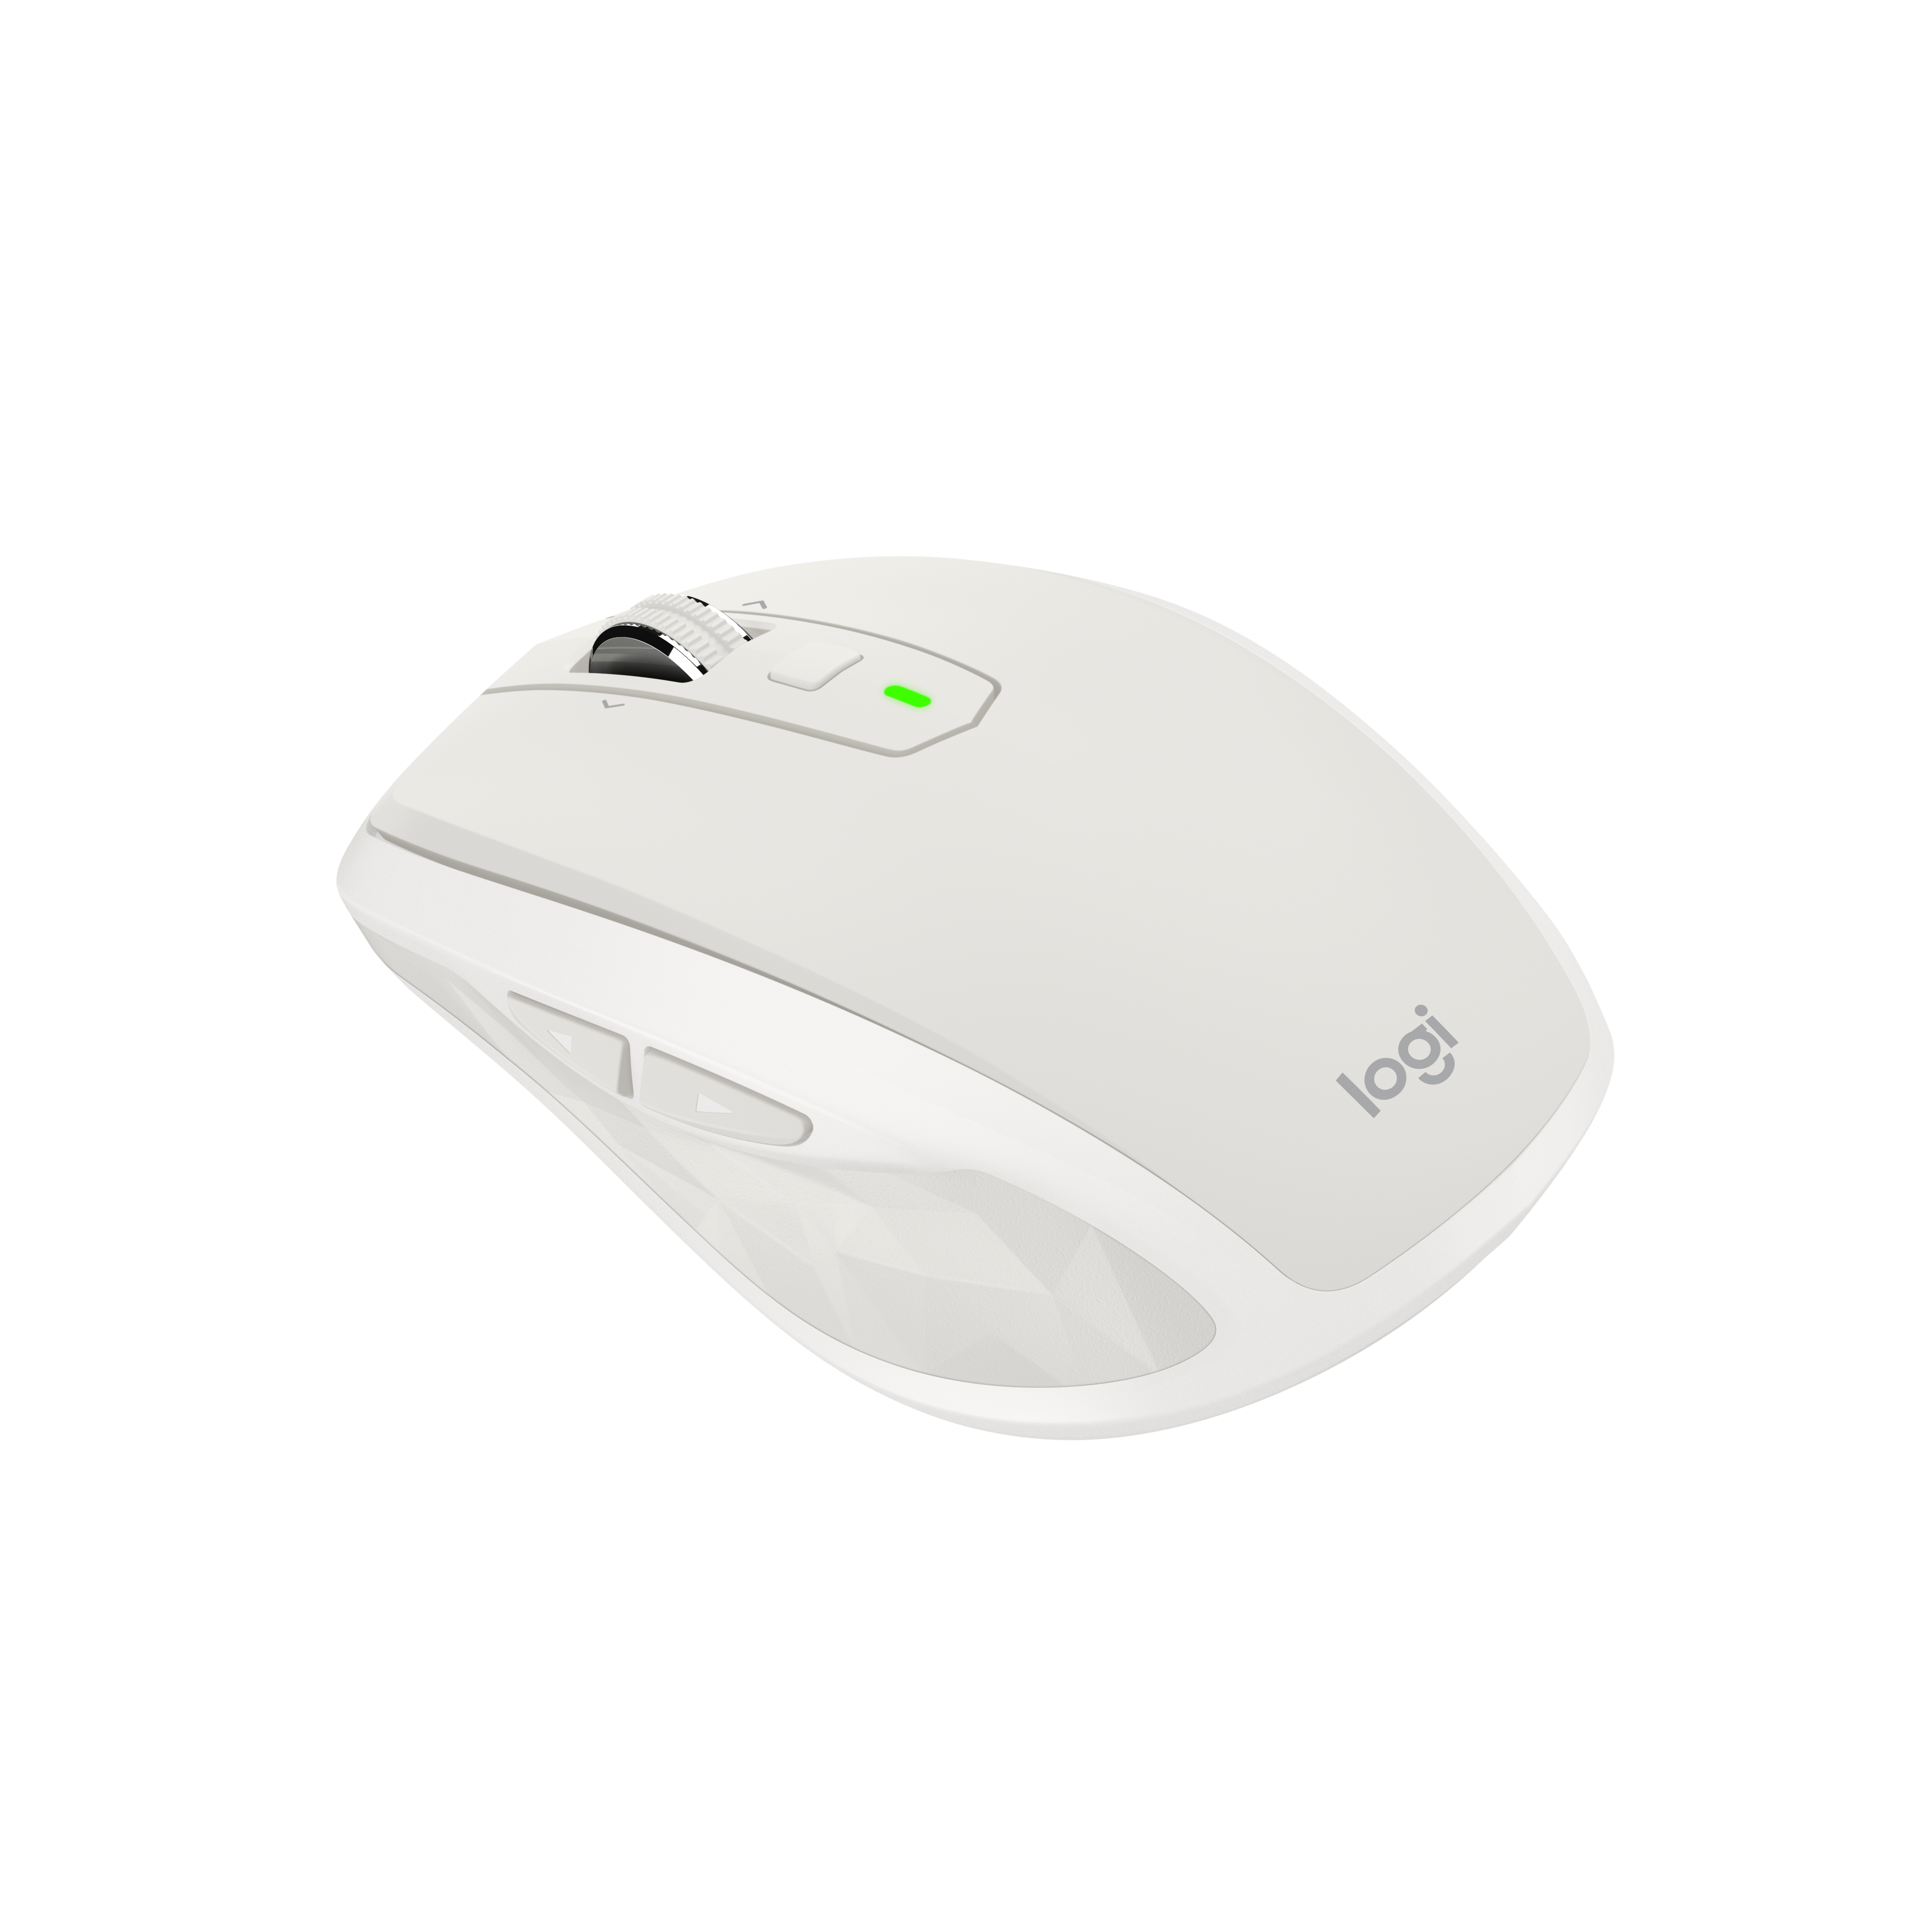 MX Anywhere Wireless Mouse (grijs)